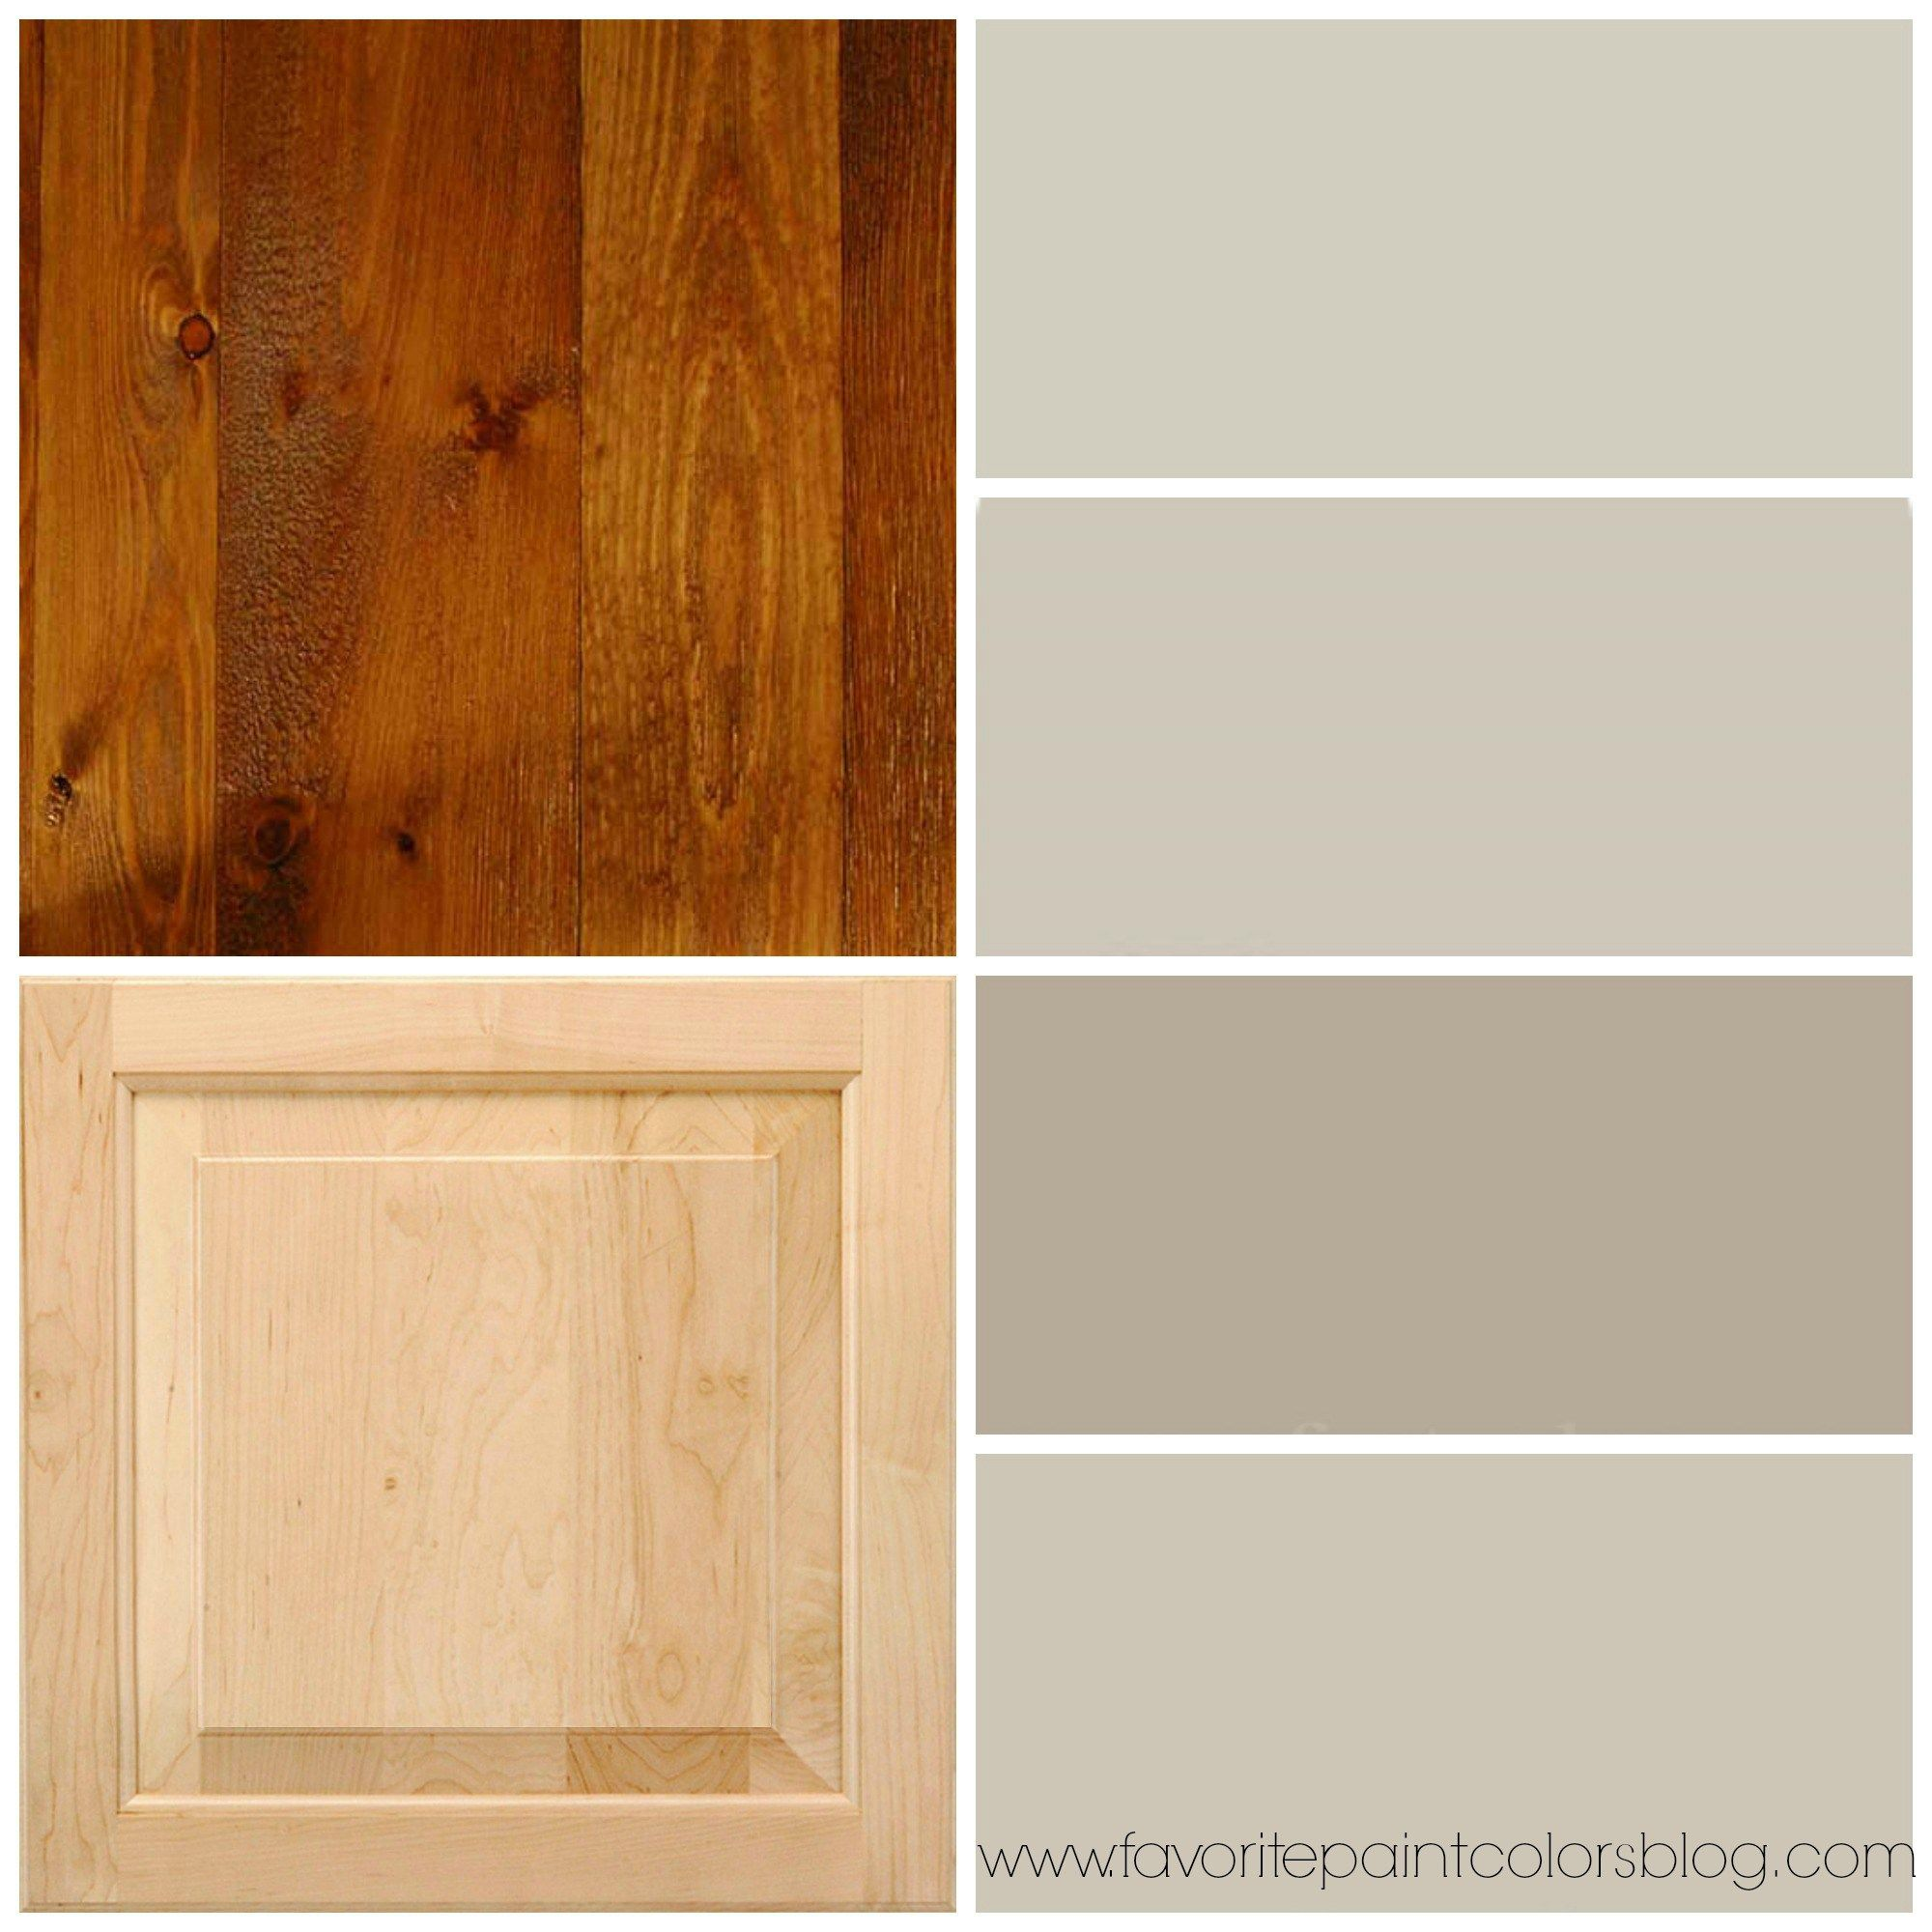 Greige Paint Colors To Go With Wood Trim And Cabinets Wood Trim Bathroom Paint Colors Greige Paint Colors